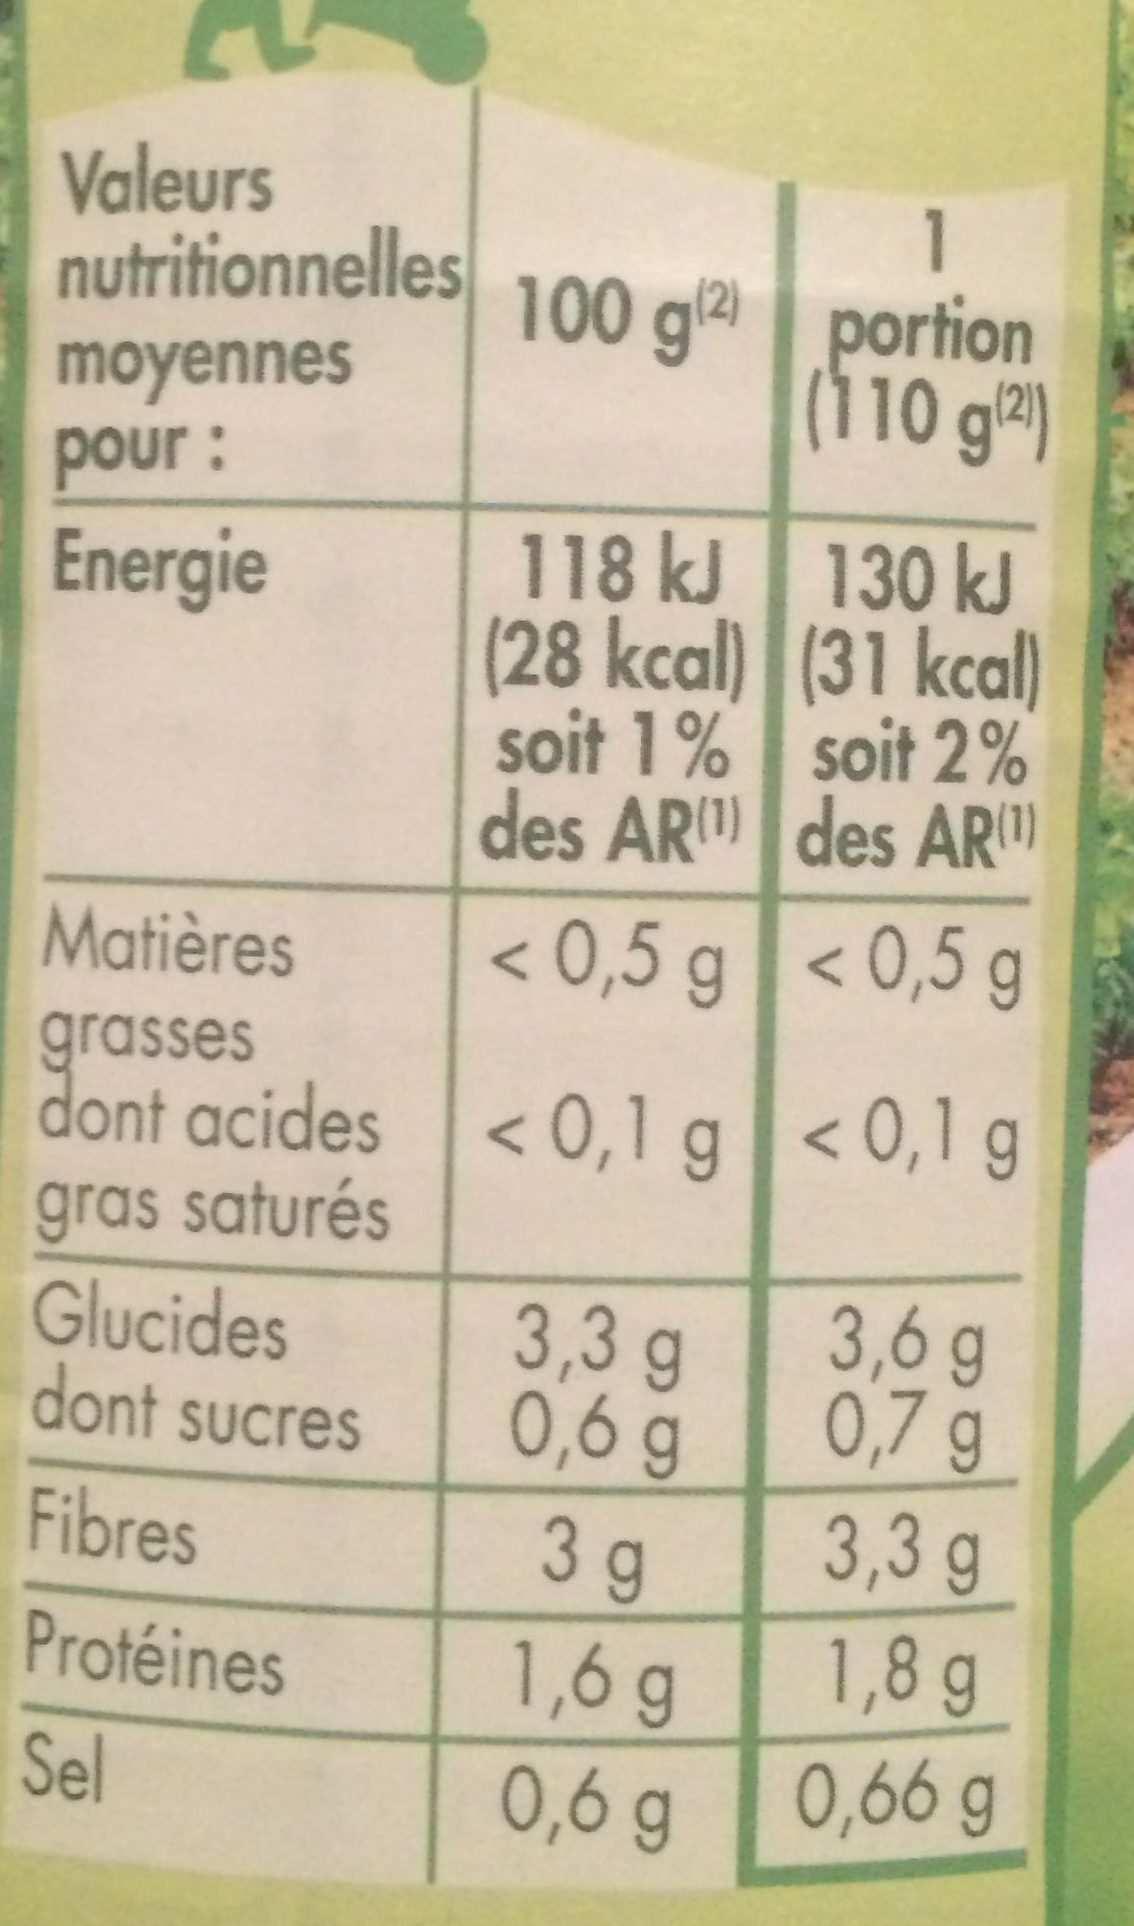 Haricots verts - Nutrition facts - fr